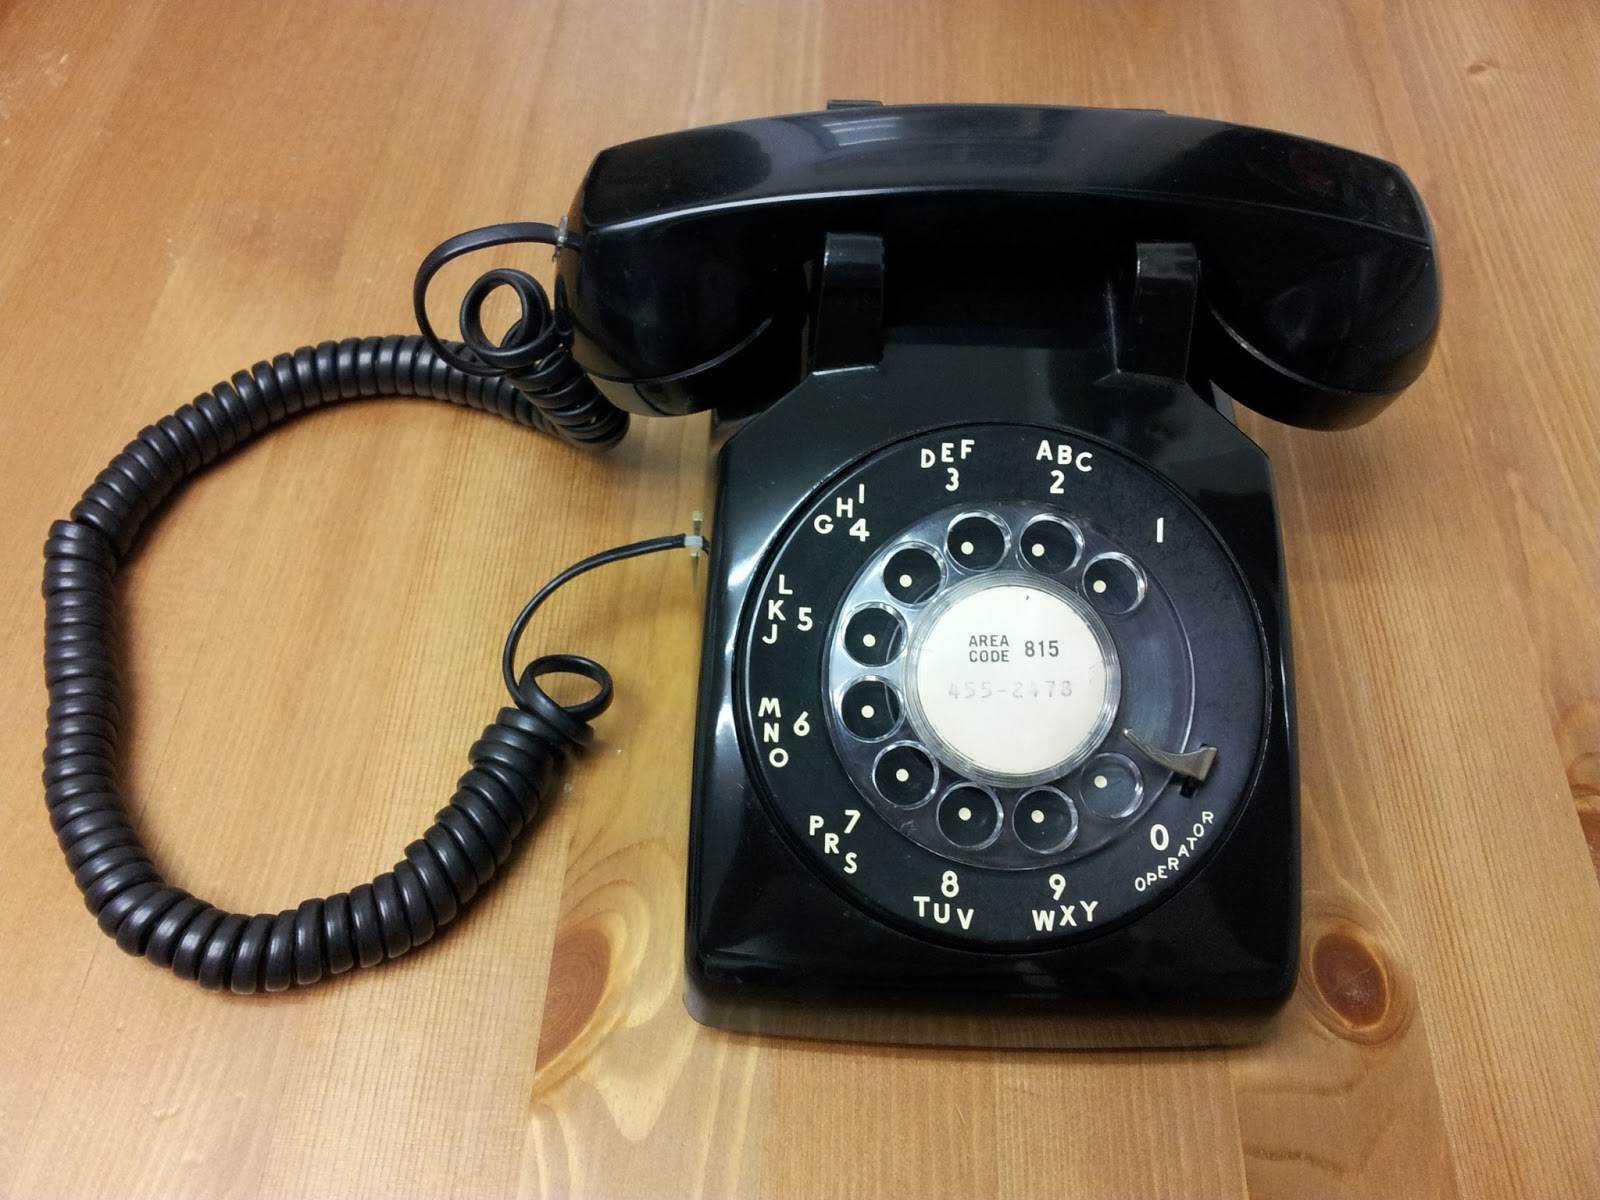 hight resolution of ironically rotary dial or pulse dial is actually digital protocol and is supposed to be closer relative to voip than modern push buttons phones